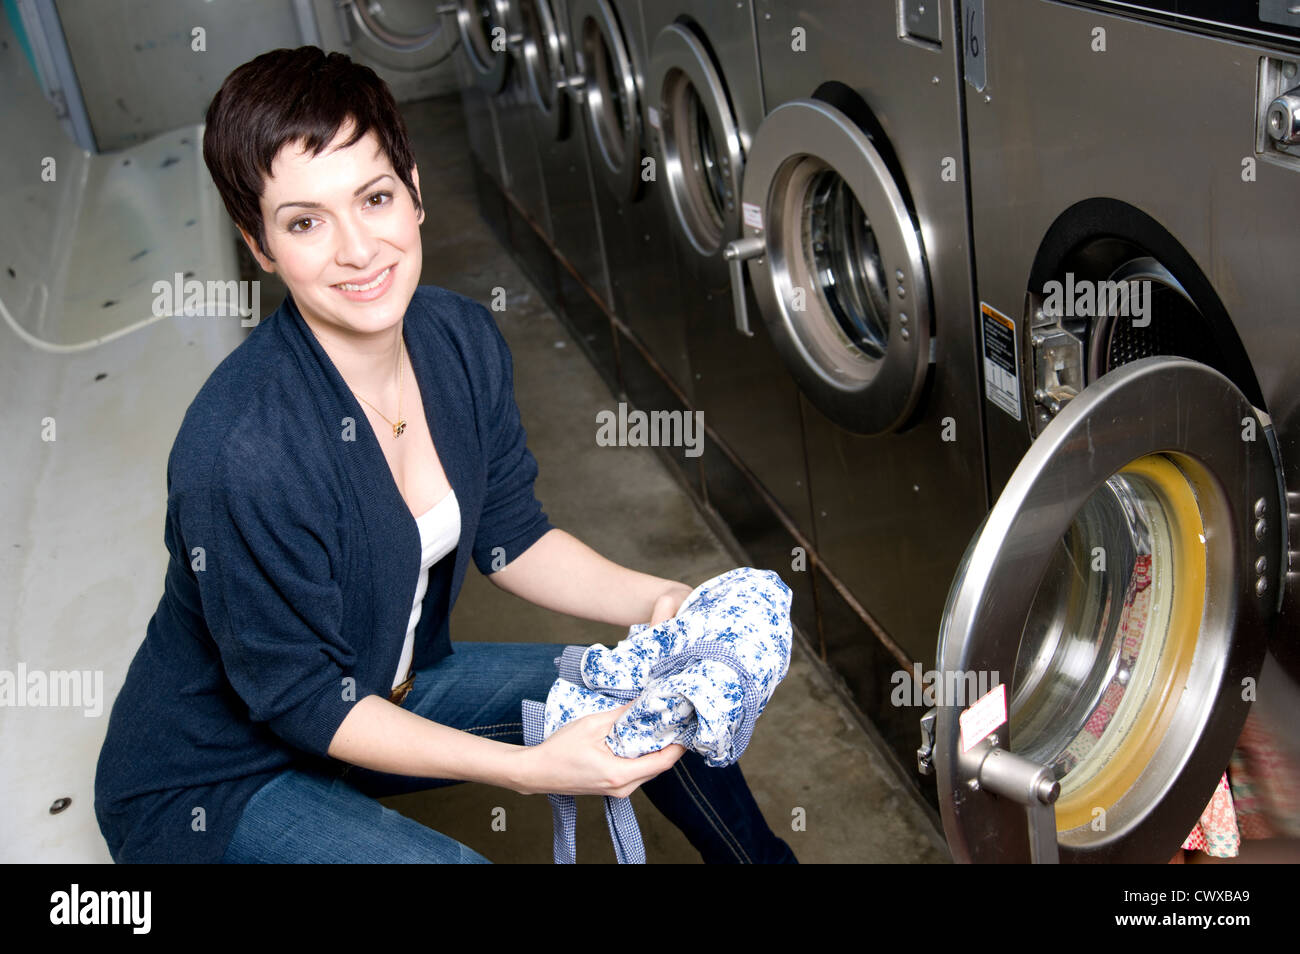 She does laundry with a smile - Stock Image